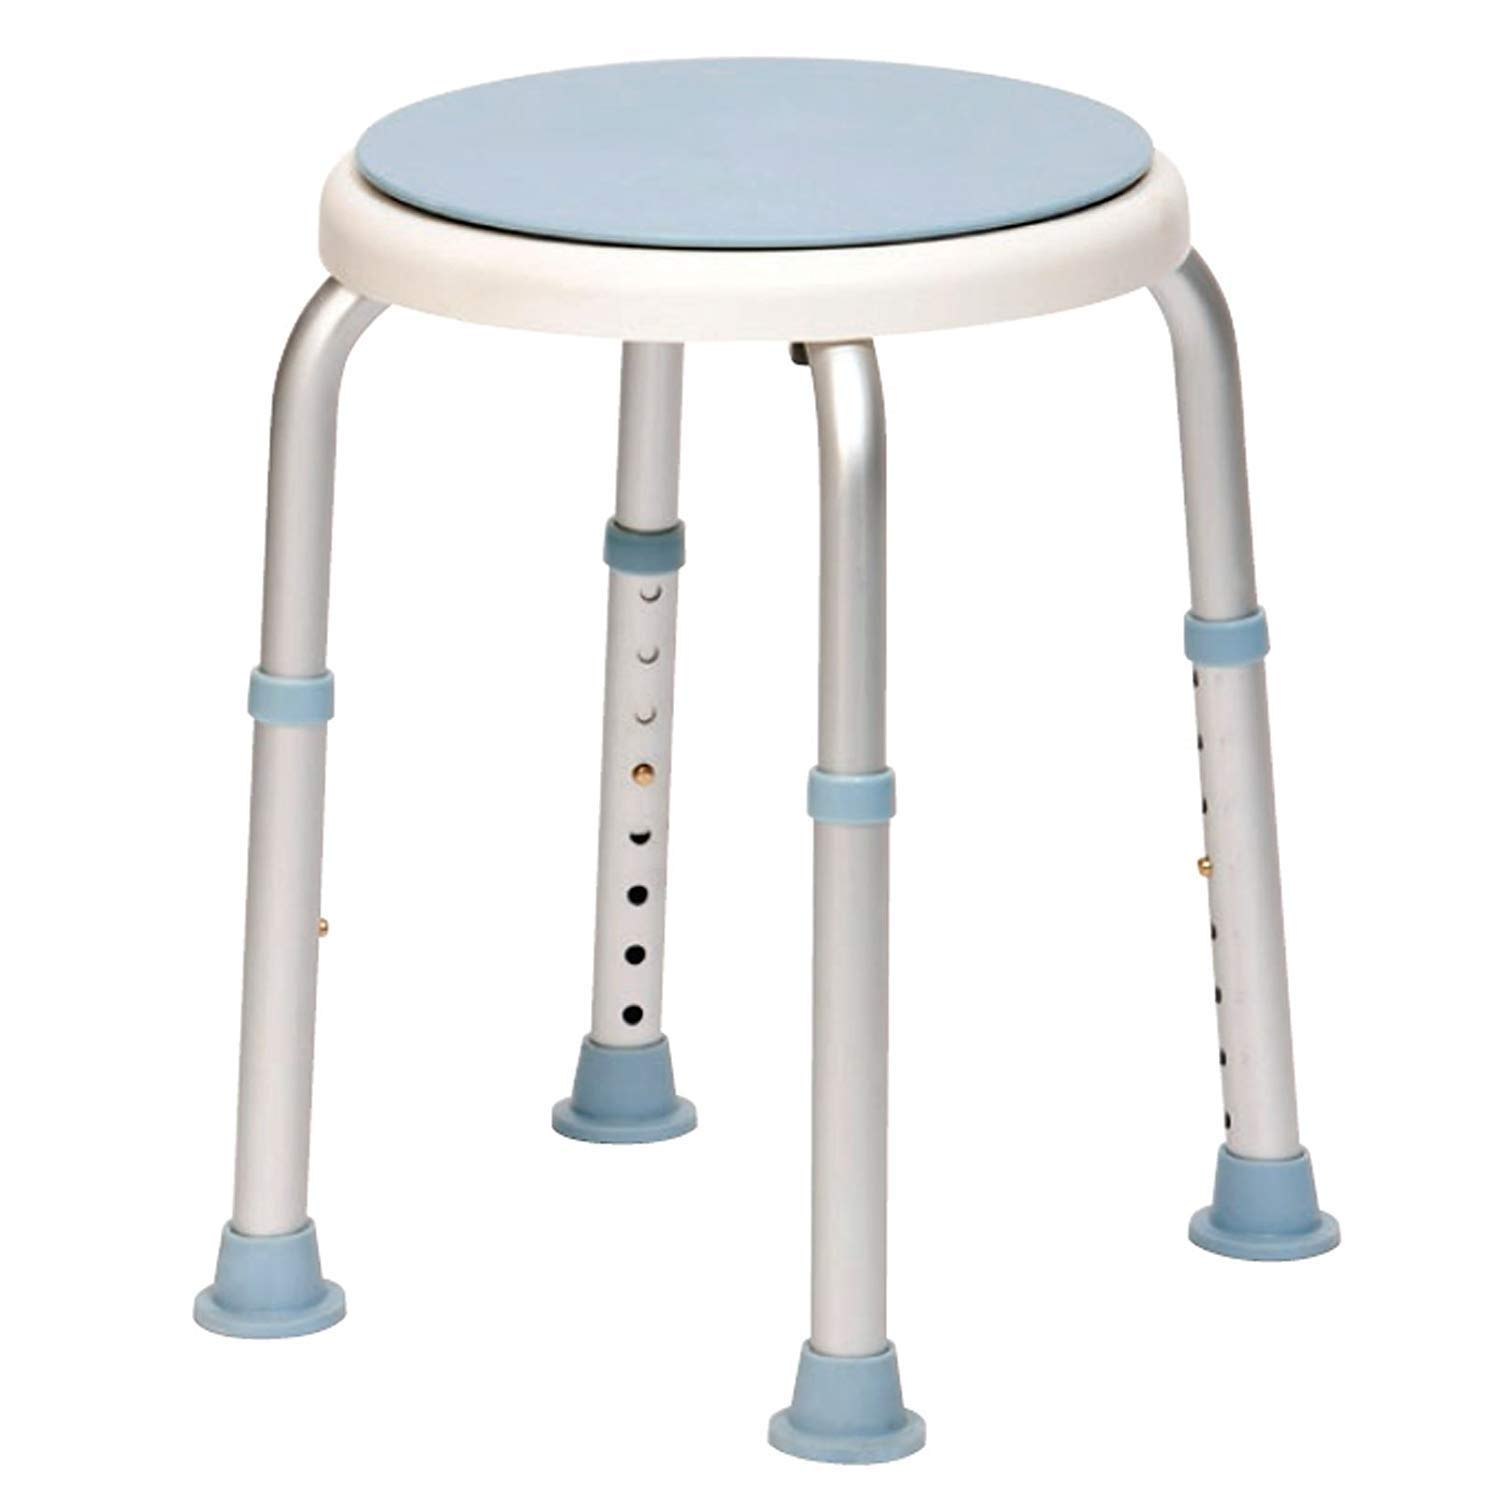 Beauty Drive Rotating Rounded Bath/Shower Stool with Swivel Seat Aluminum Material Suitable for People with Reduced Mobility